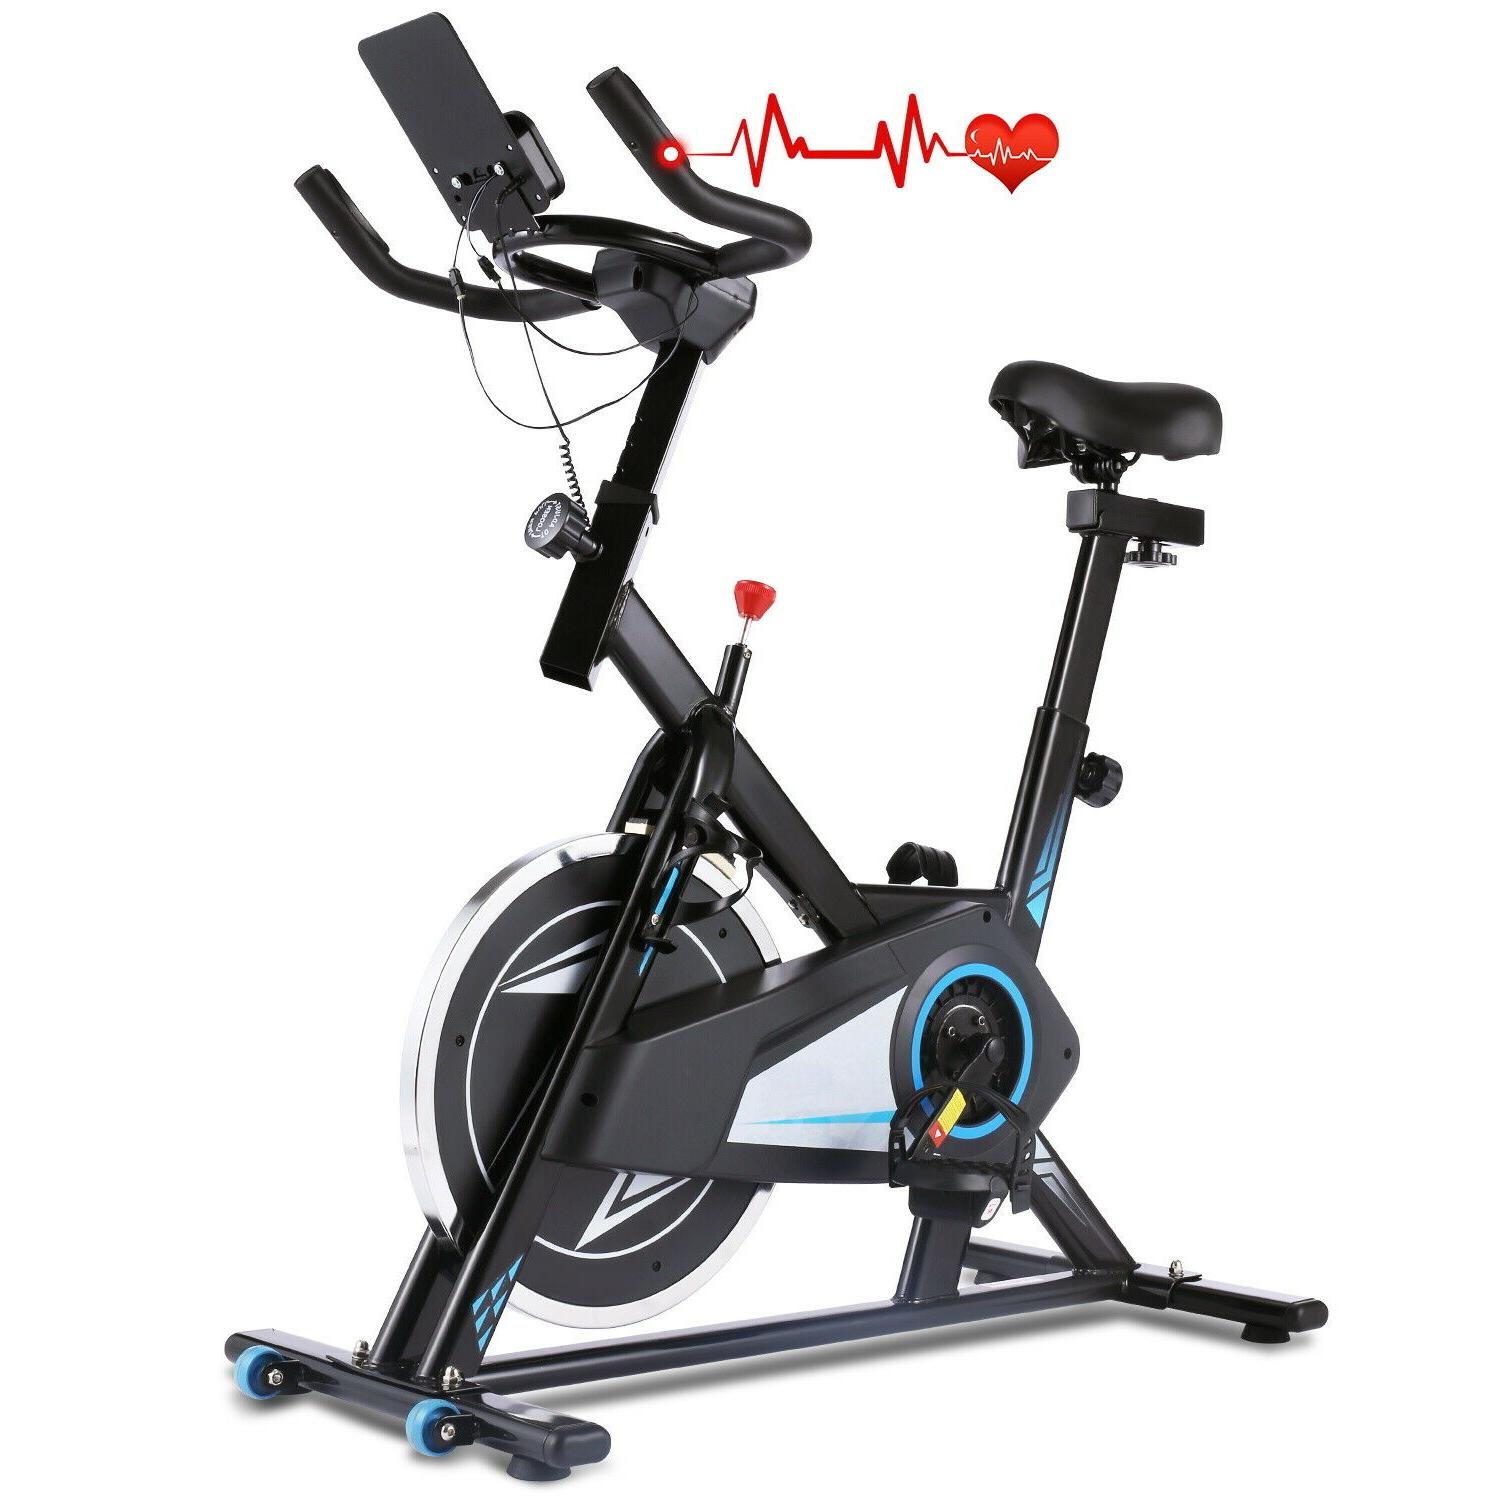 ANCHEER Stationary Indoor Cycling Bike Drive